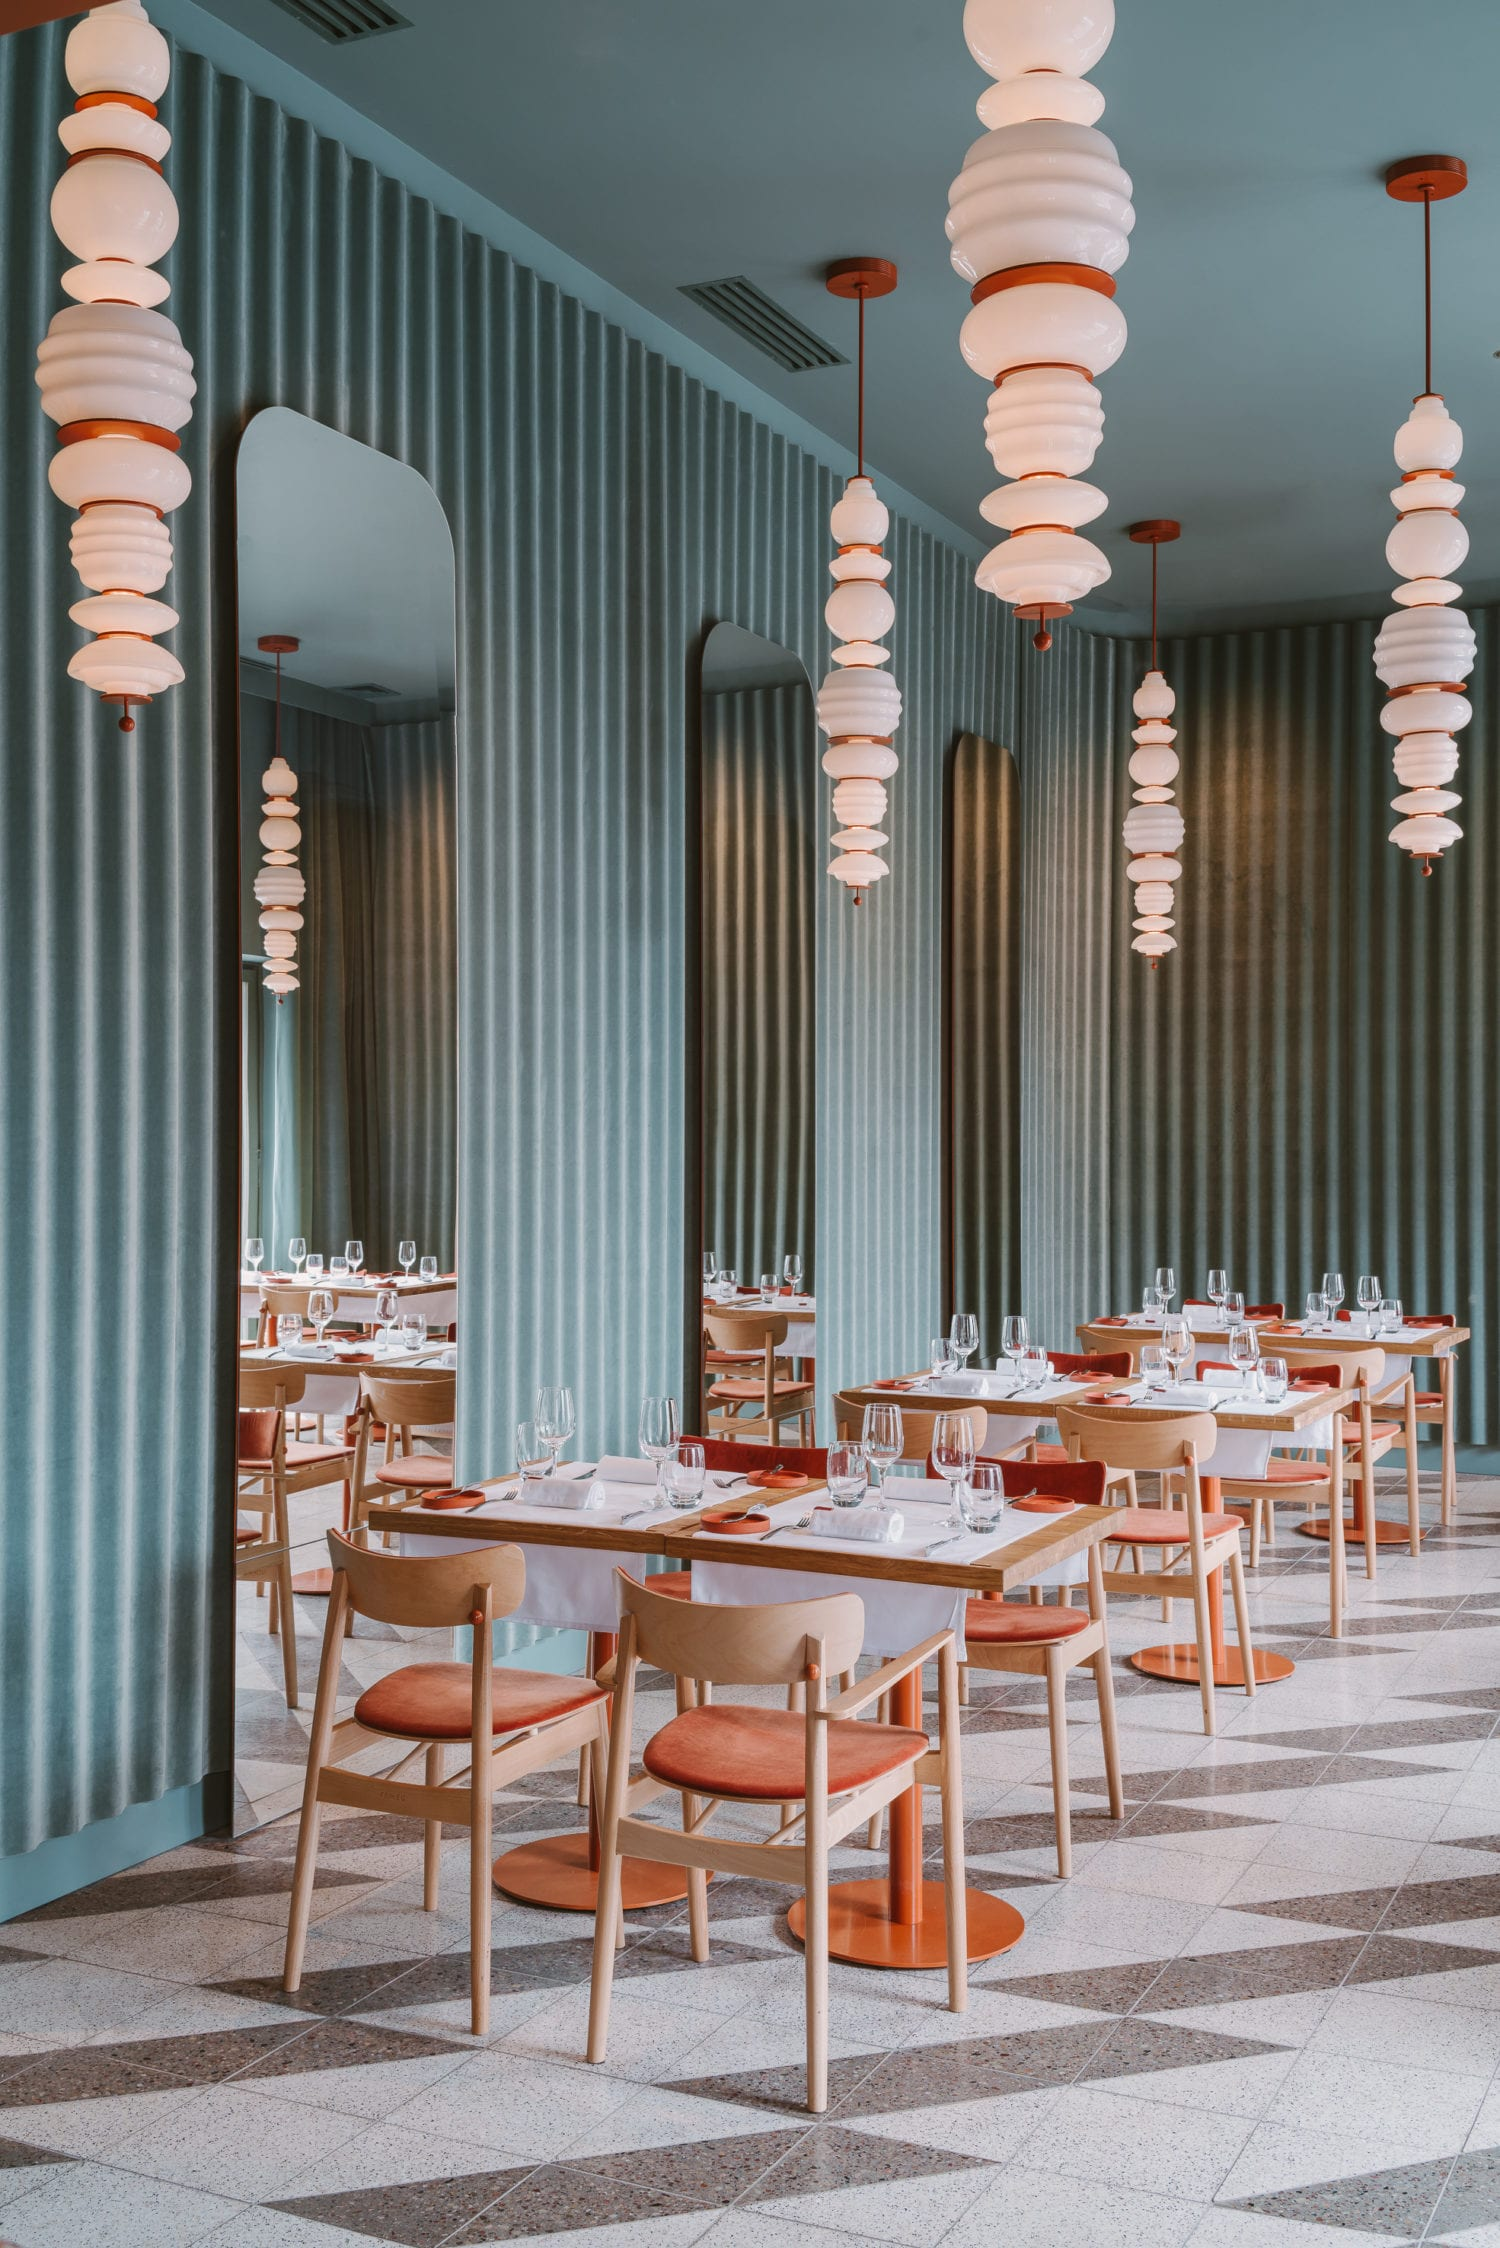 Opasly Tom Restaurant In Warsaw Poland By Buck Studio Yellowtrace 01